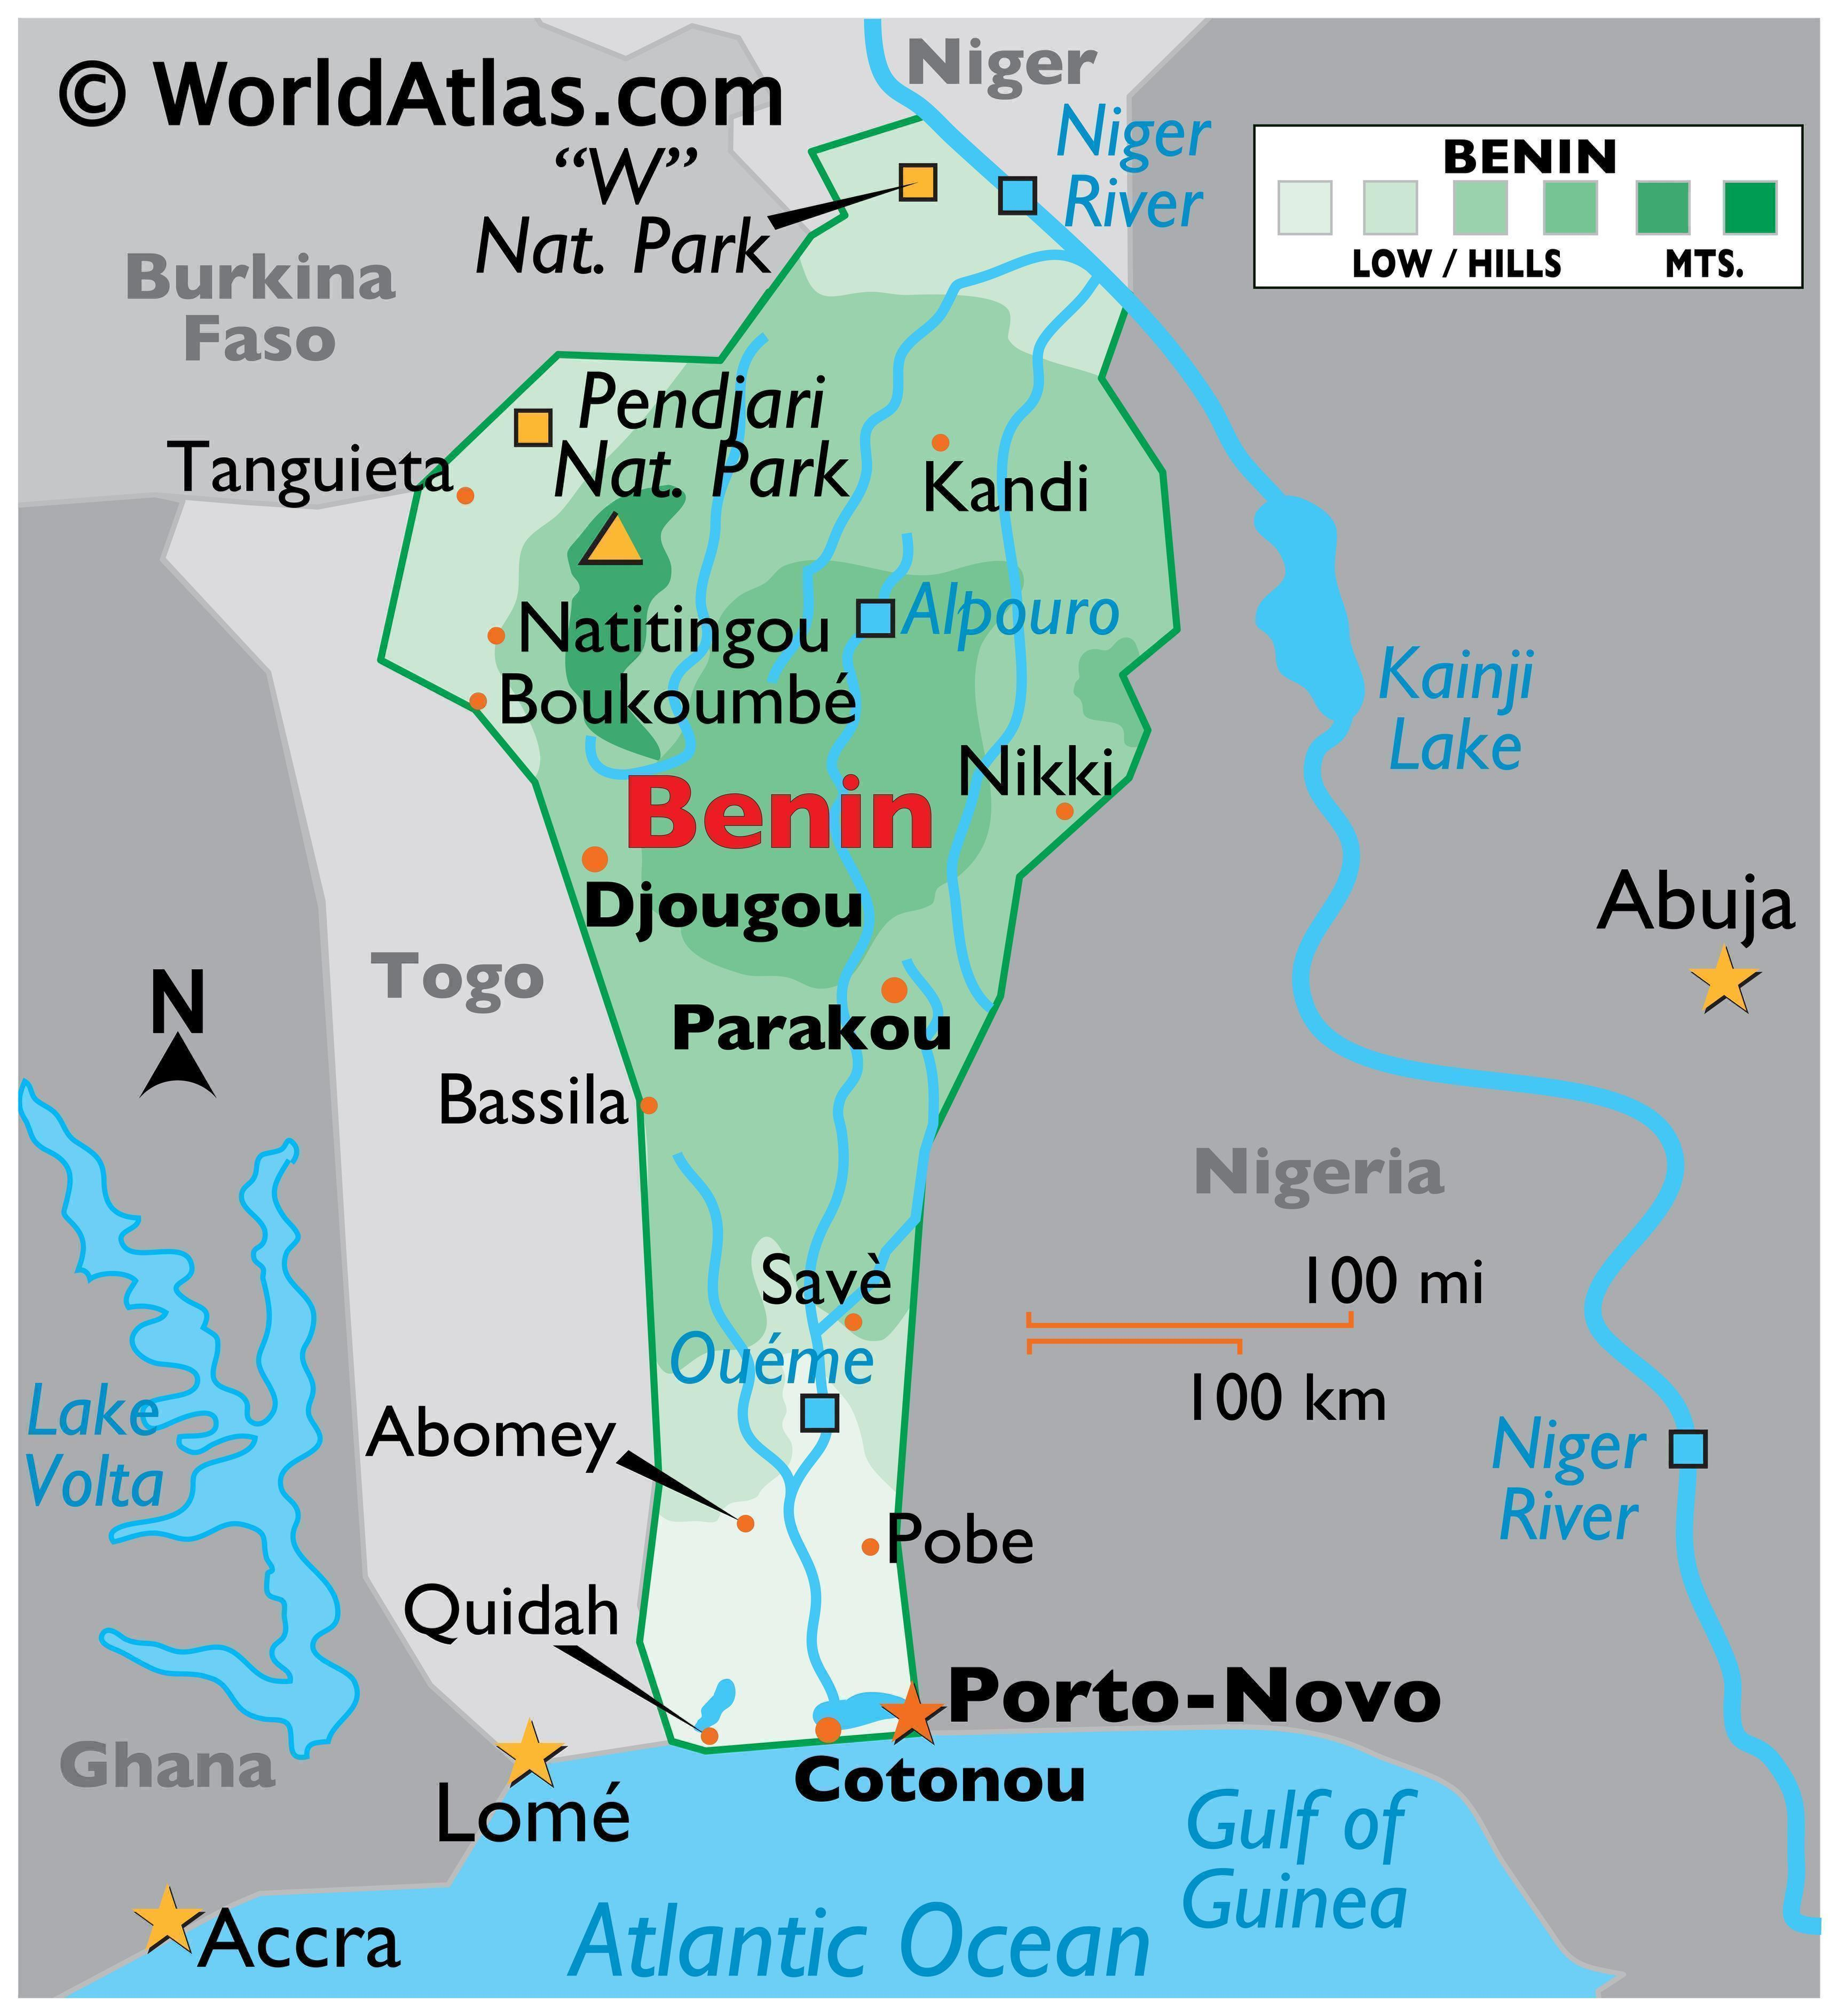 Physical Map of Benin with state boundaries. Details the physical features of the country, including relief, major rivers, cities, and various national parks.